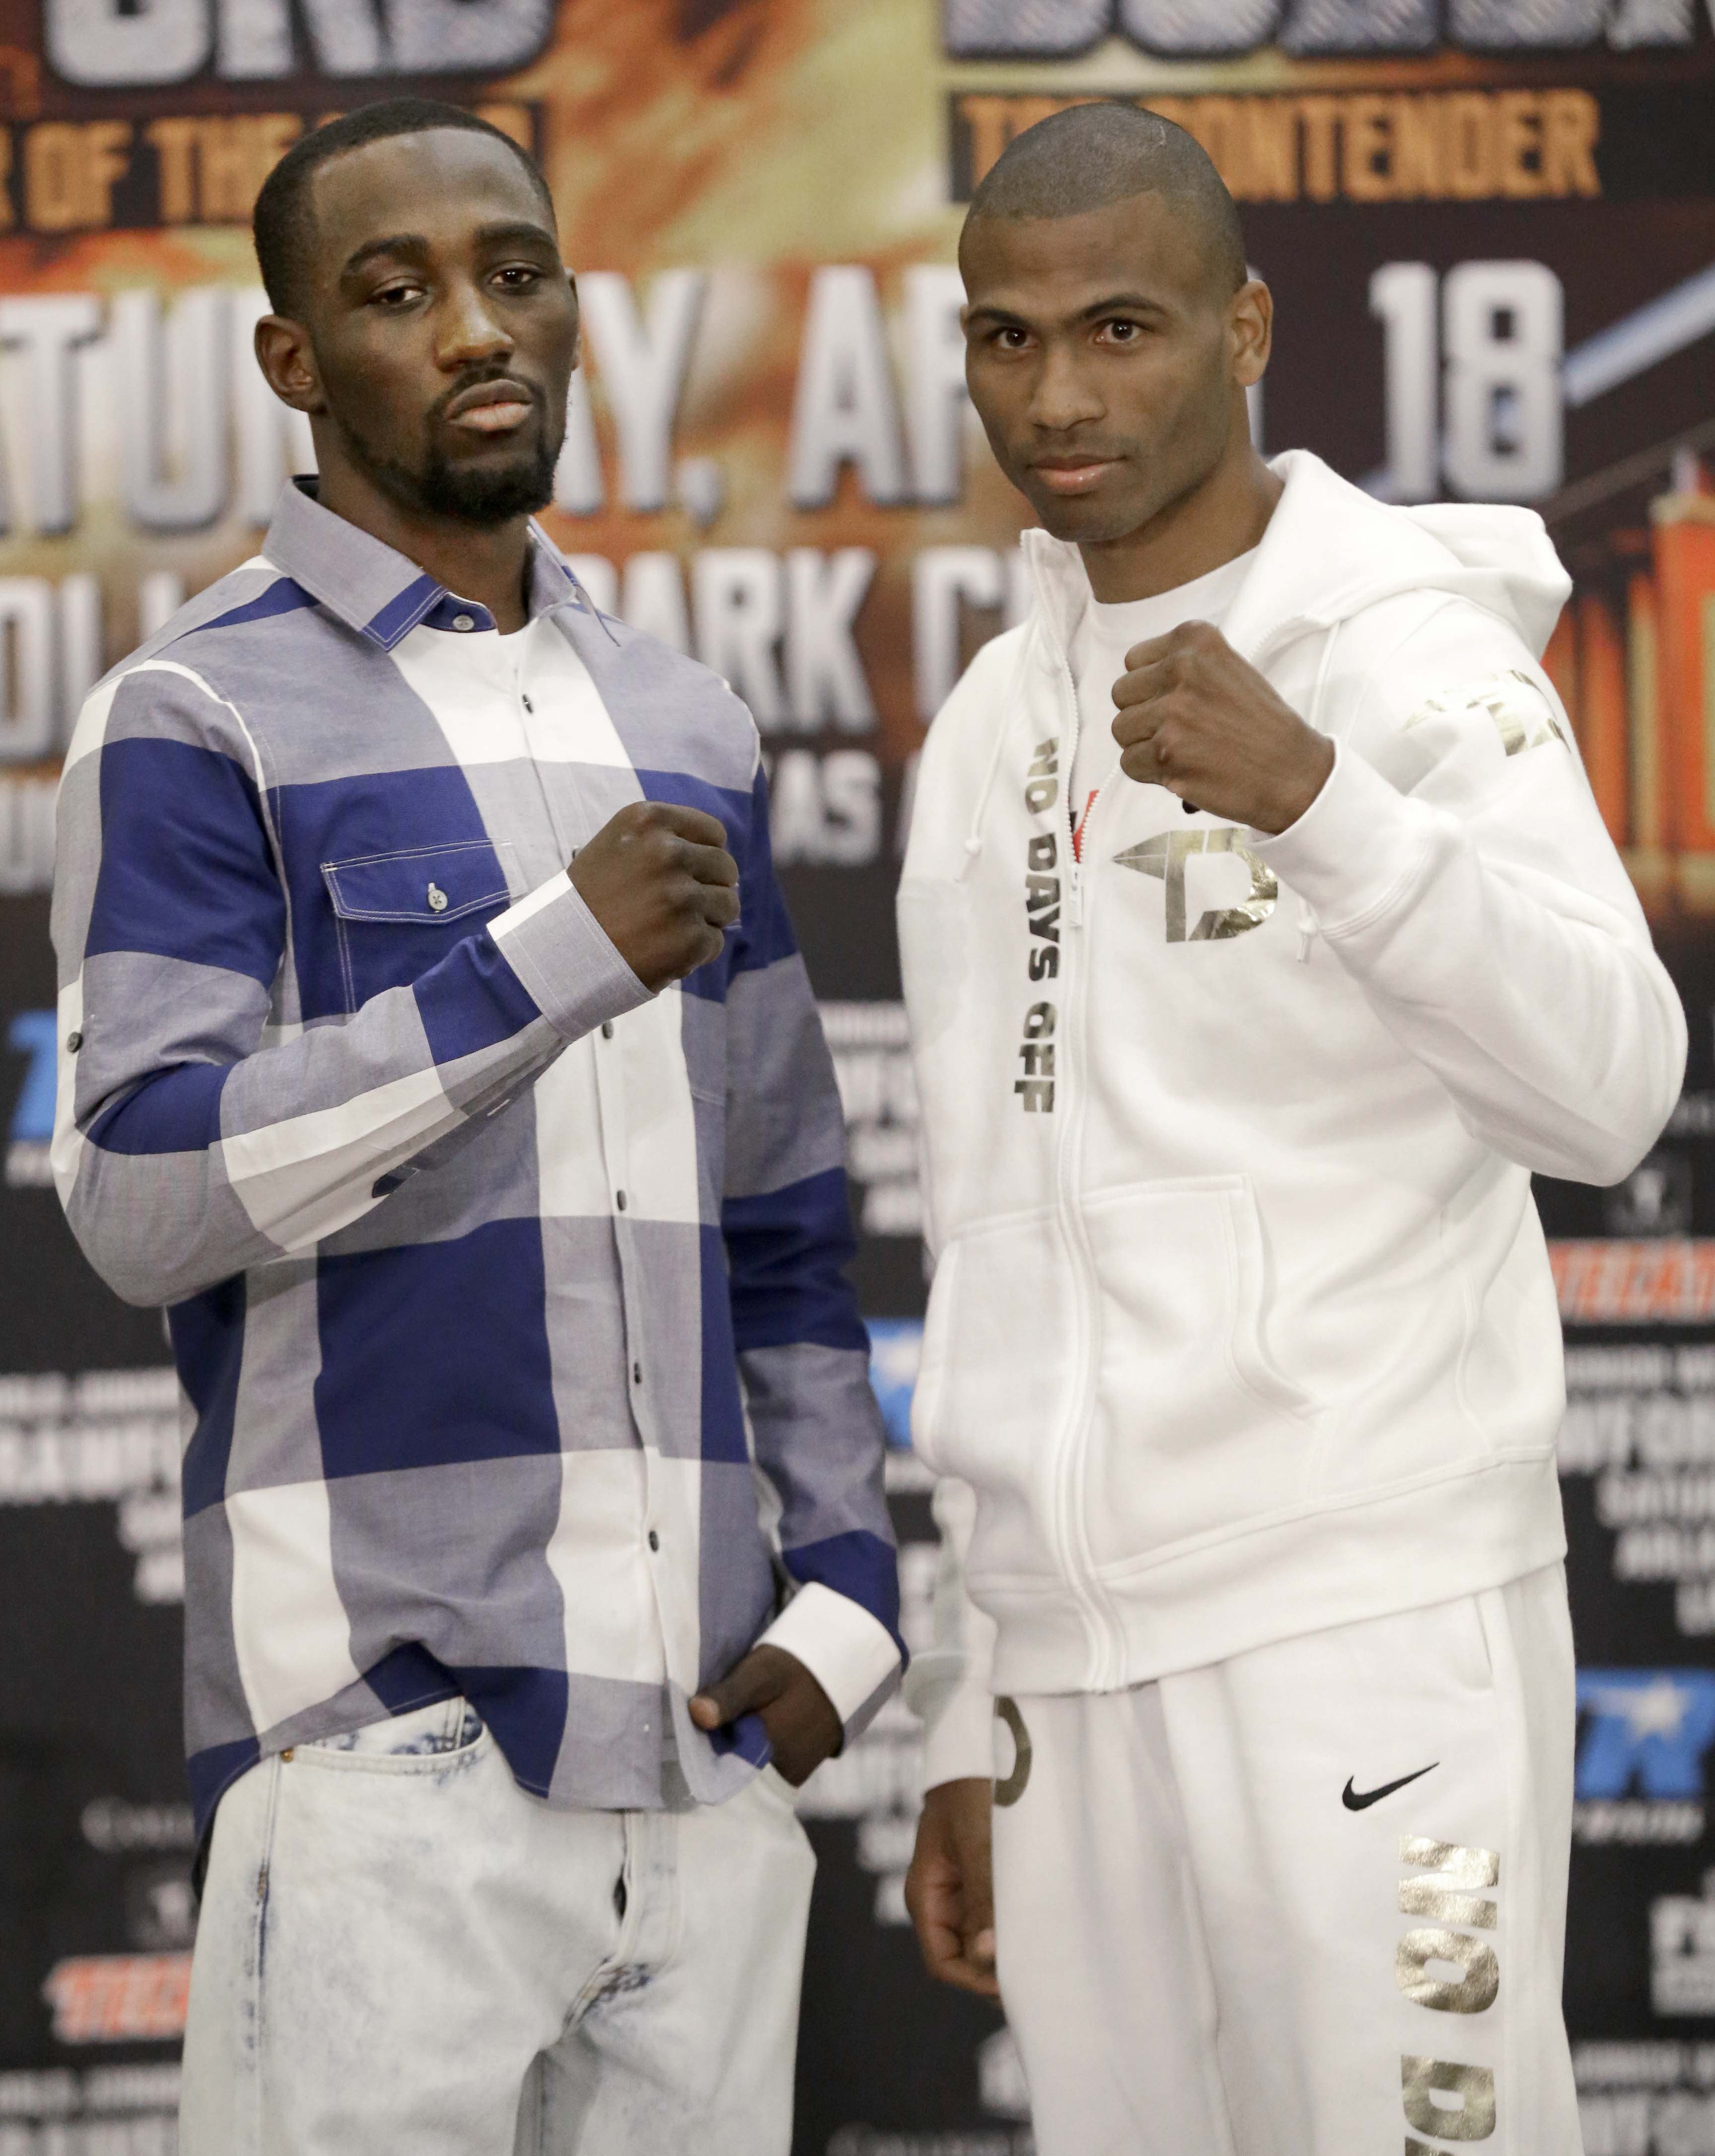 Crawford moves up with shot at WBO junior welterweight title